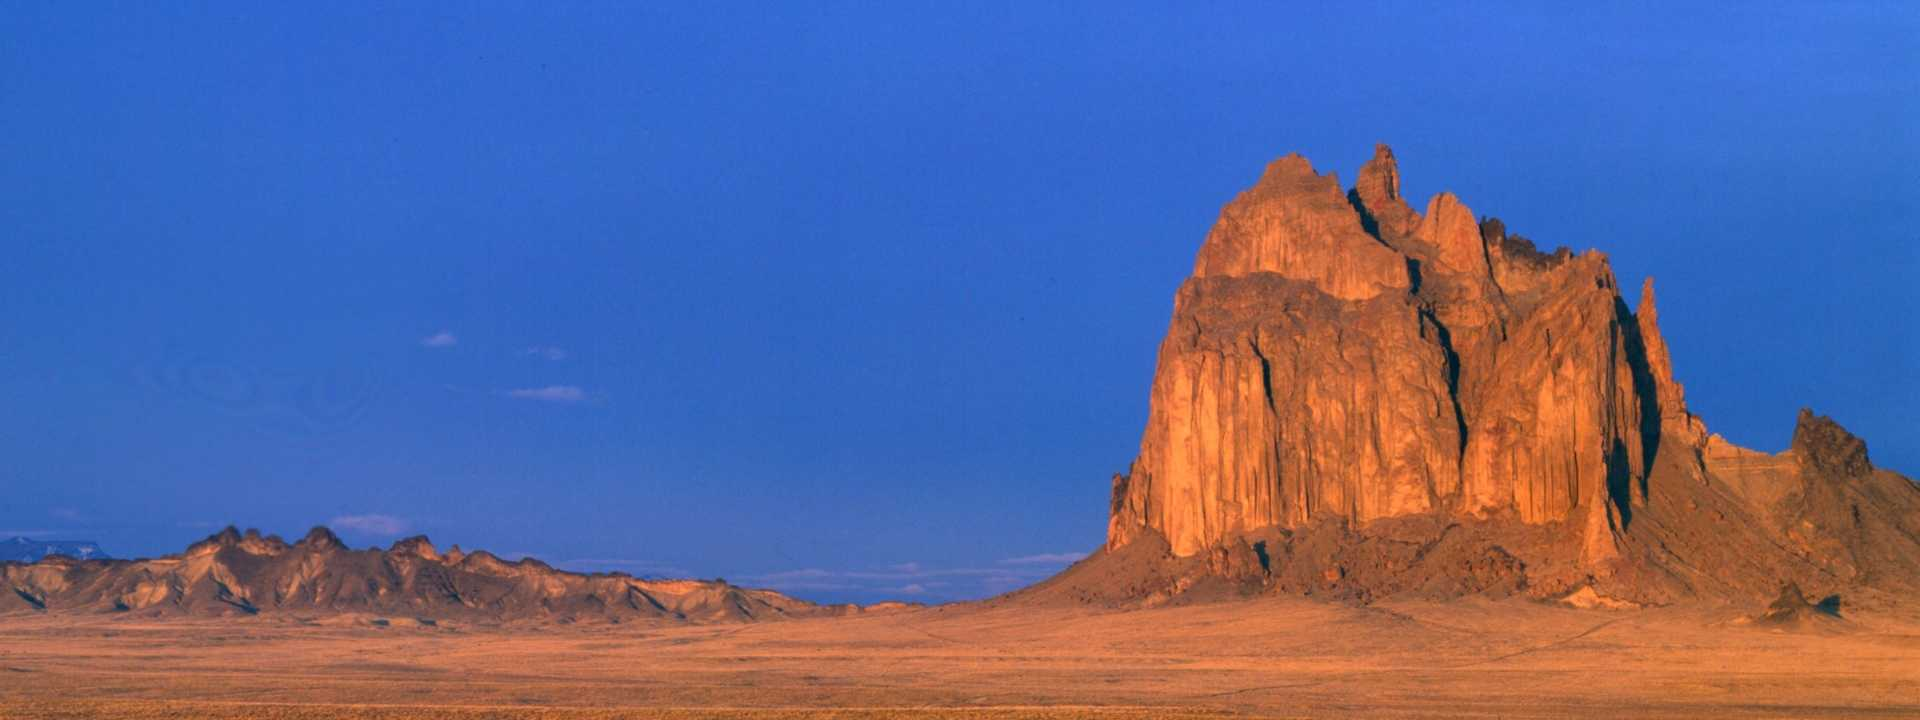 Shiprock Scenic Byways